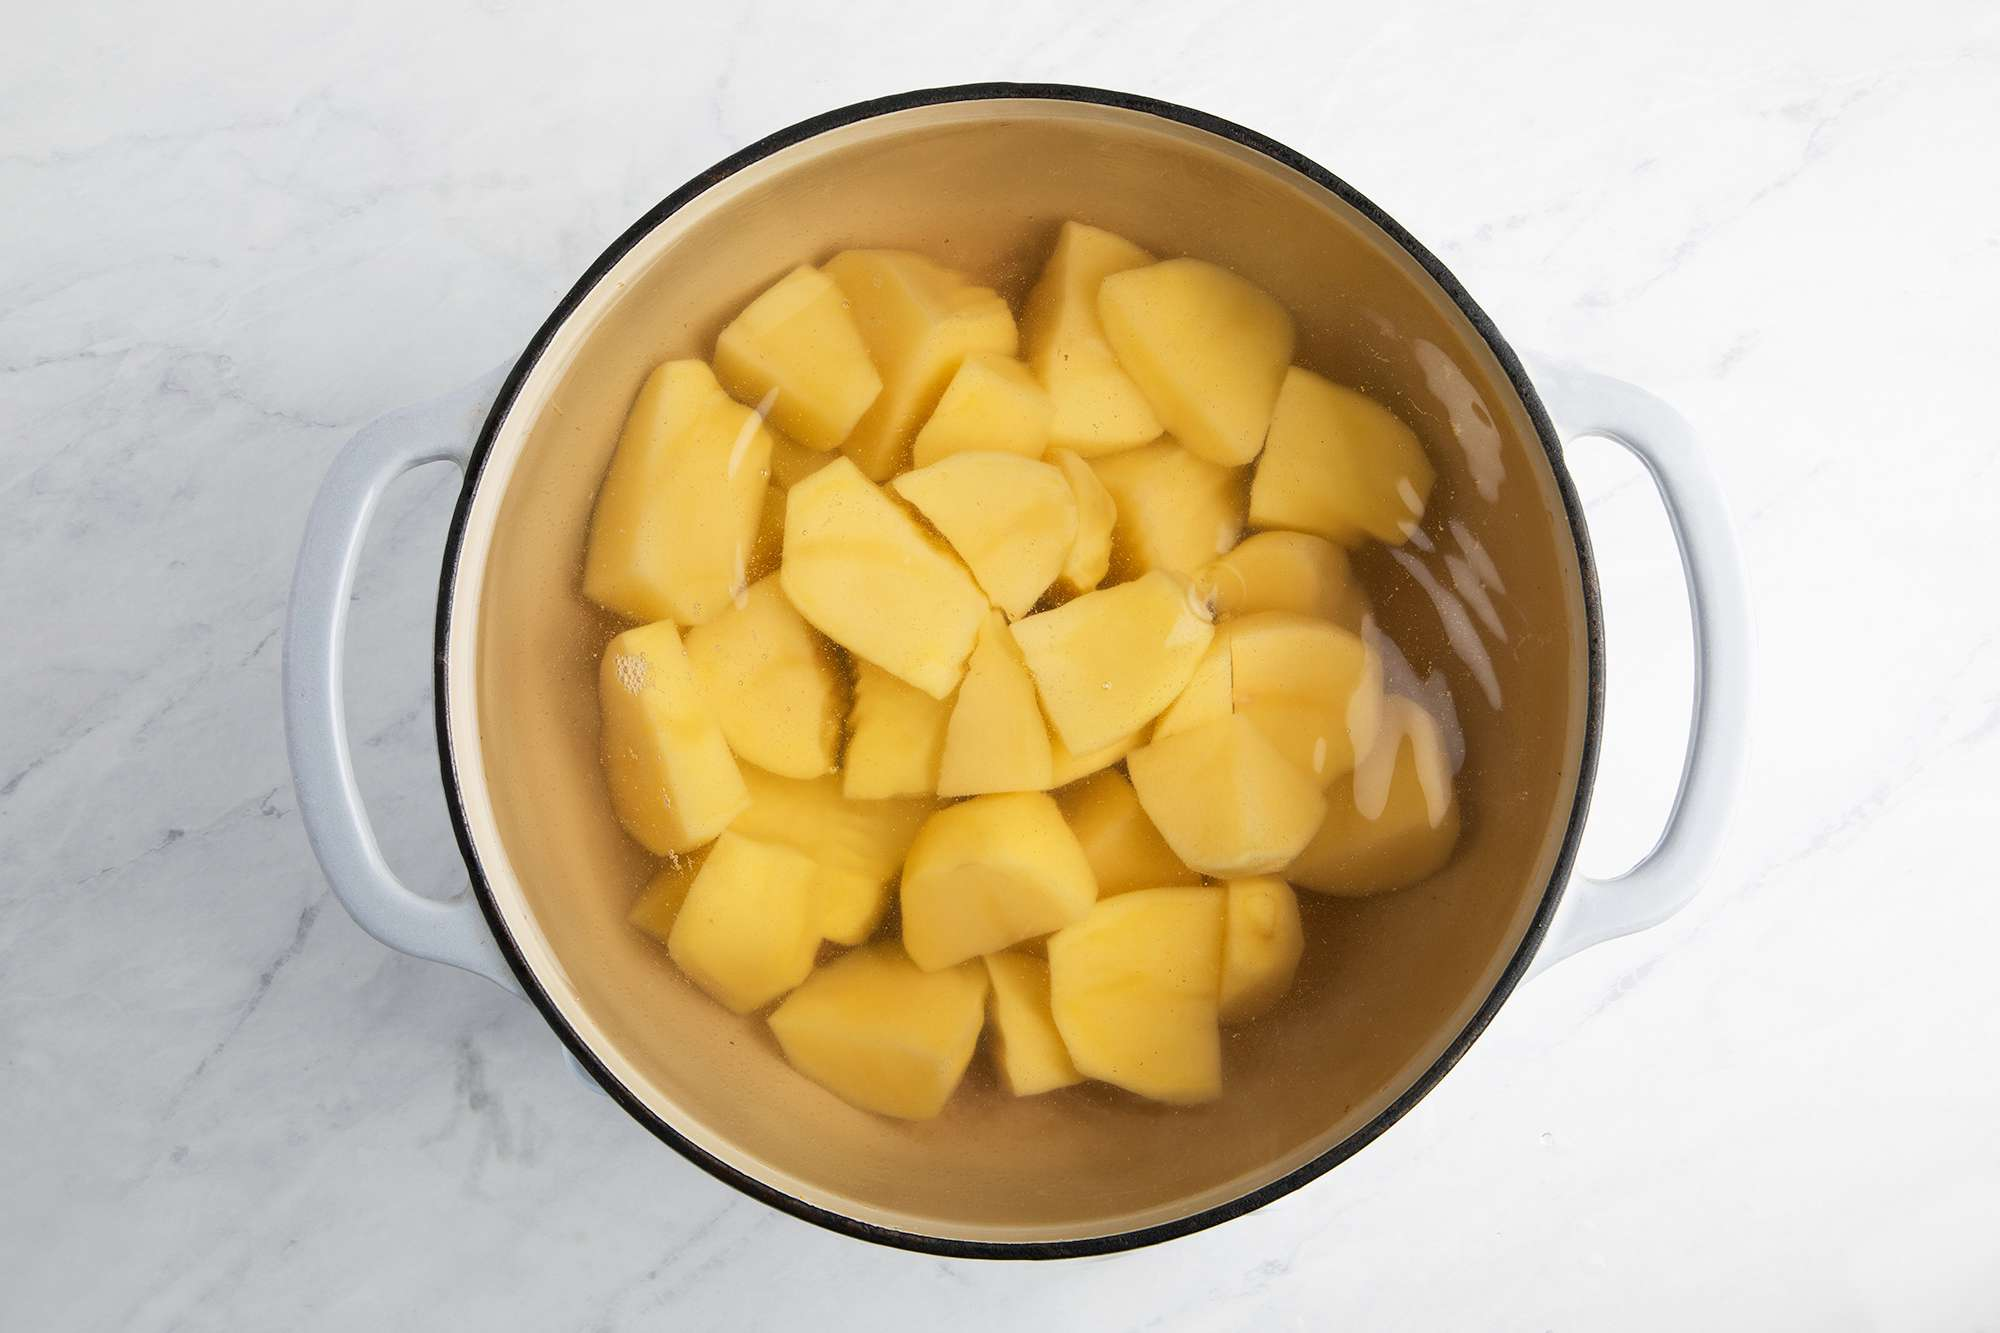 peeled and cut potatoes in a pot of water